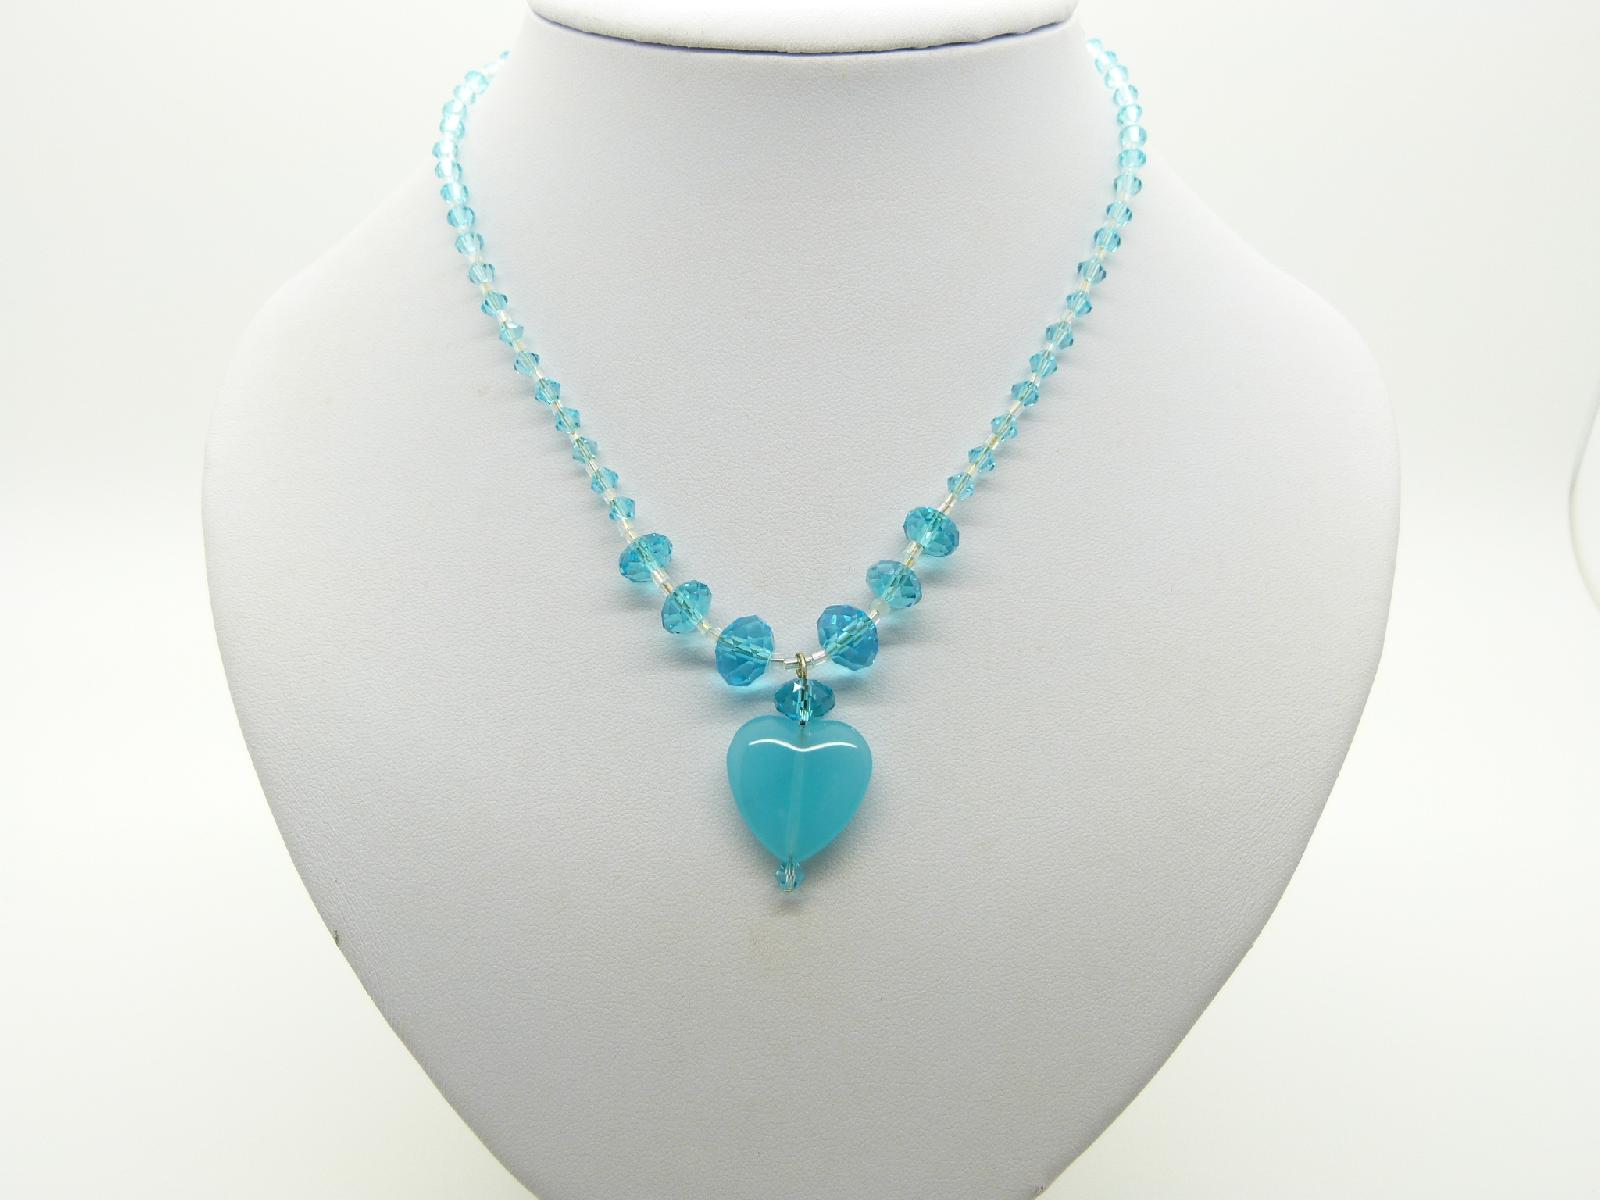 Vintage Redesigned Aqua Blue Crystal Bead Necklace Glass Heart Pendant